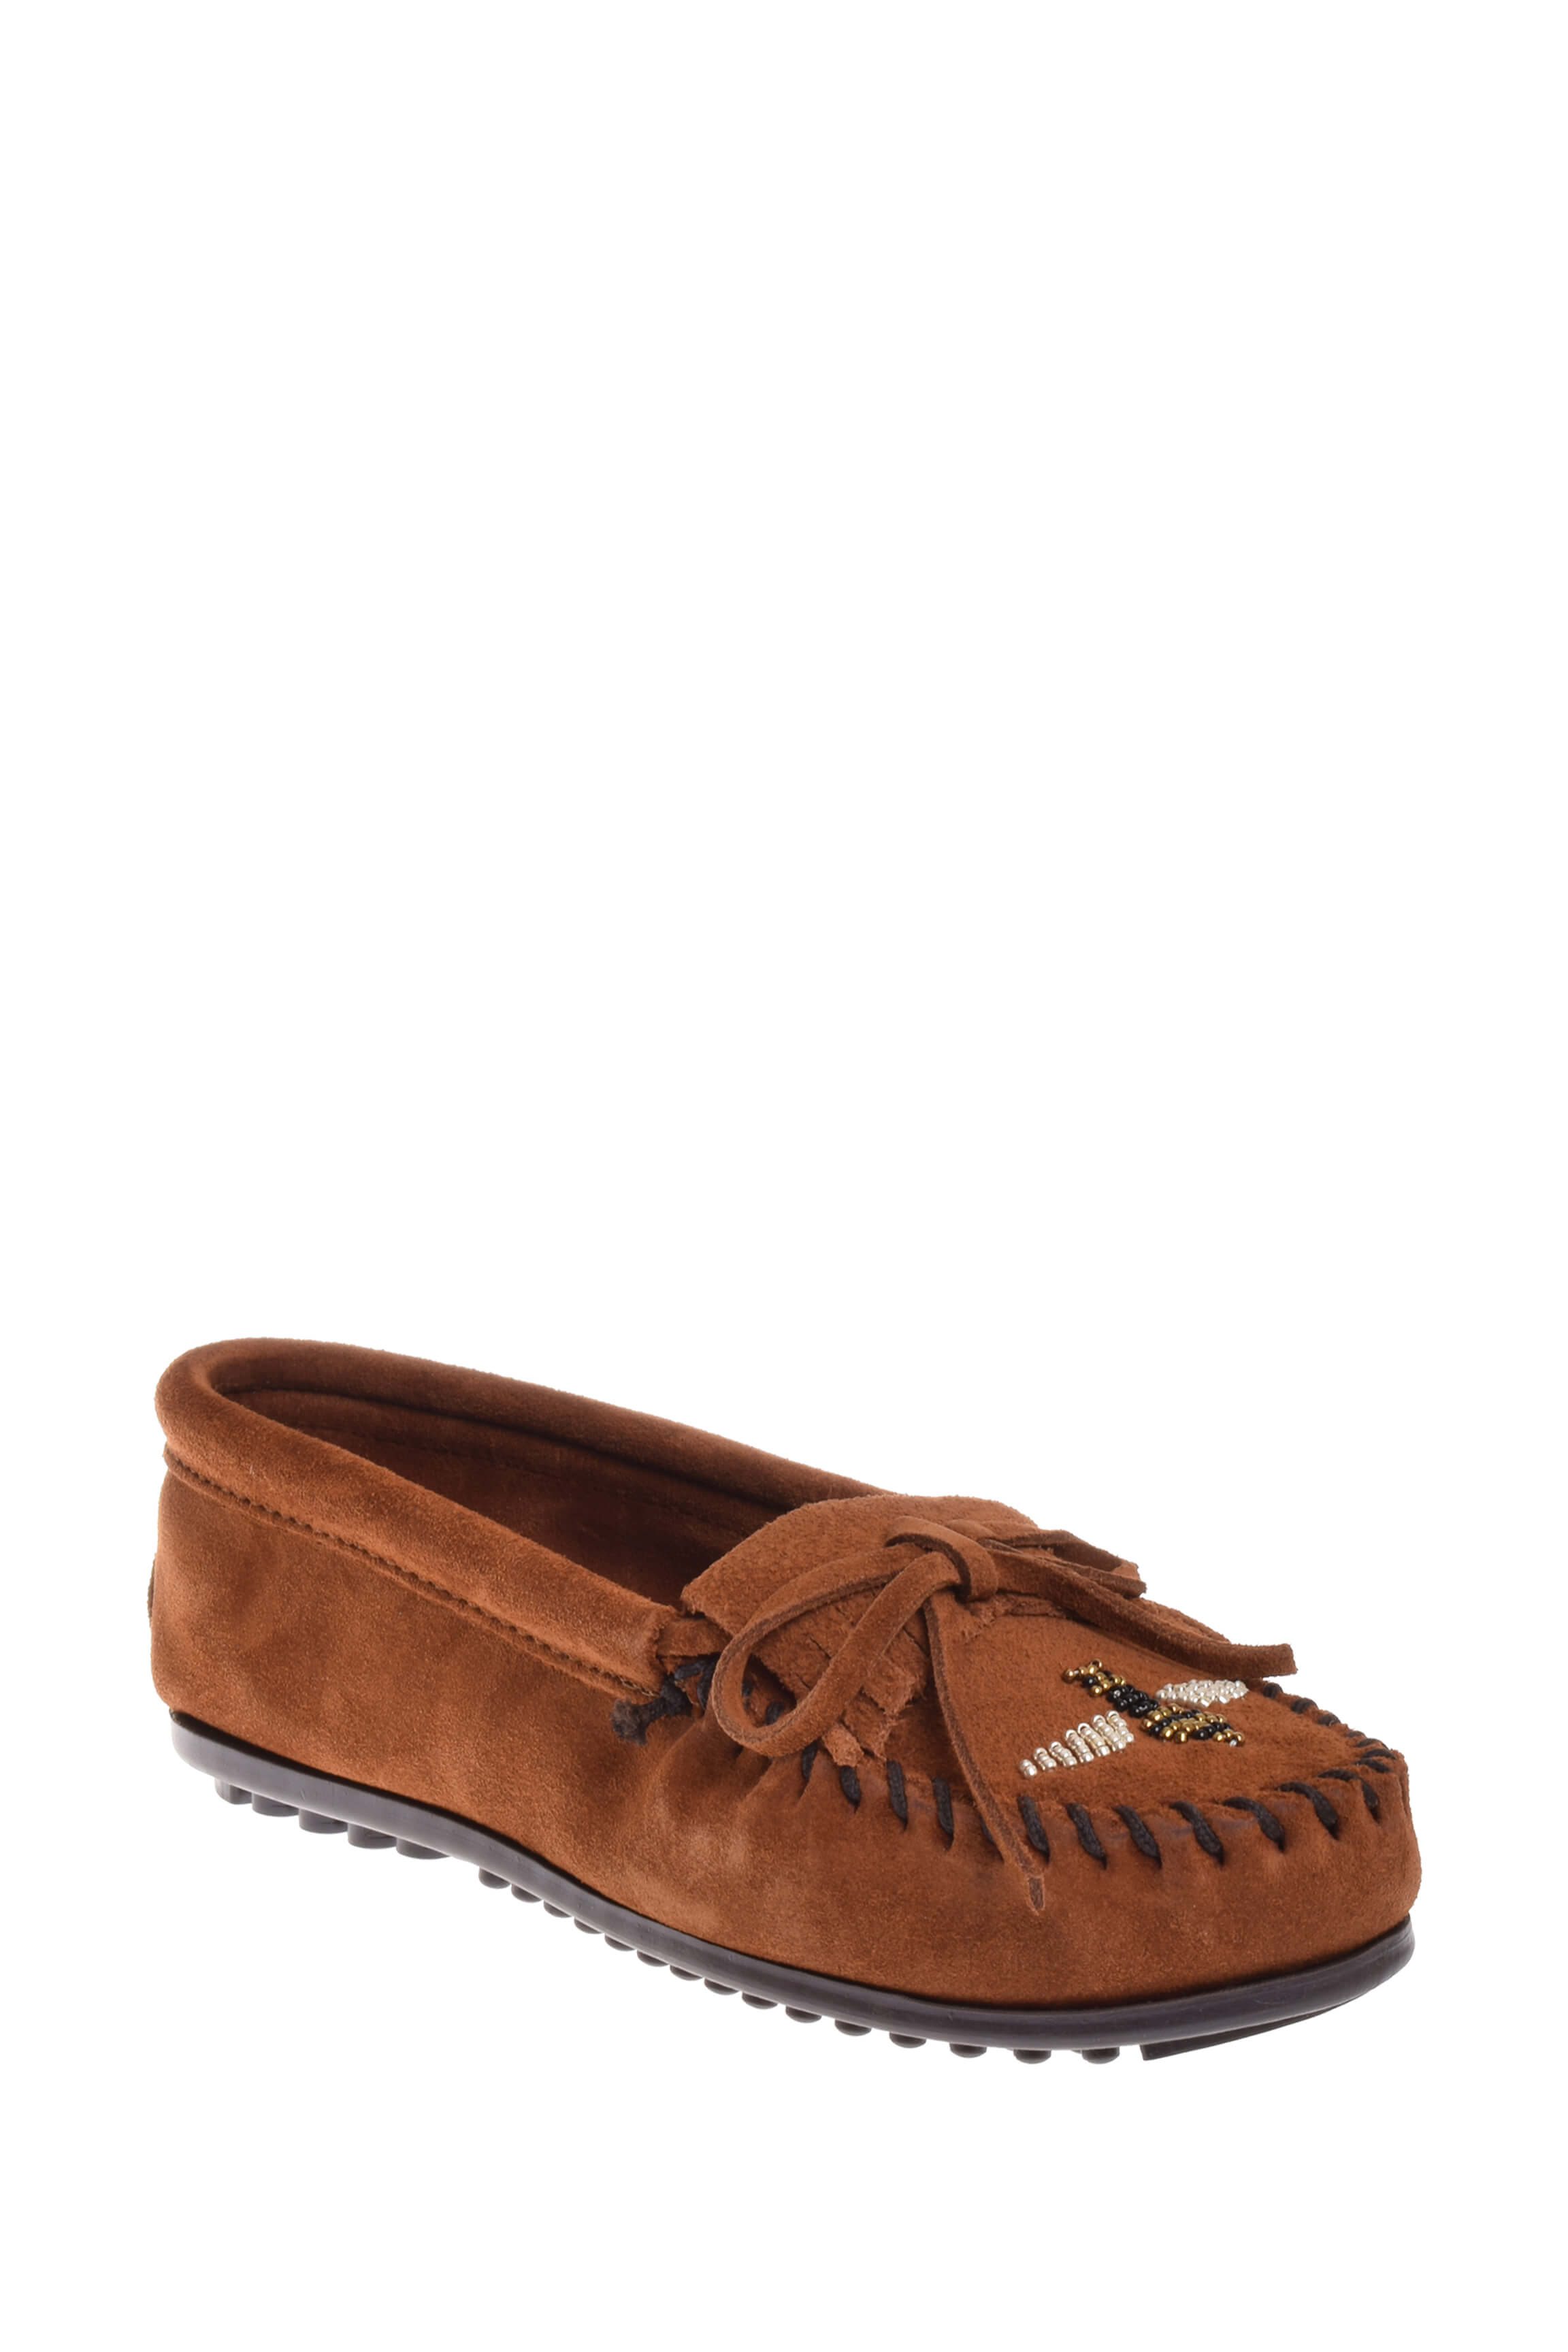 Click here to buy Minnetonka 418H Minnetonka X Moko Moc Loafer Brown.